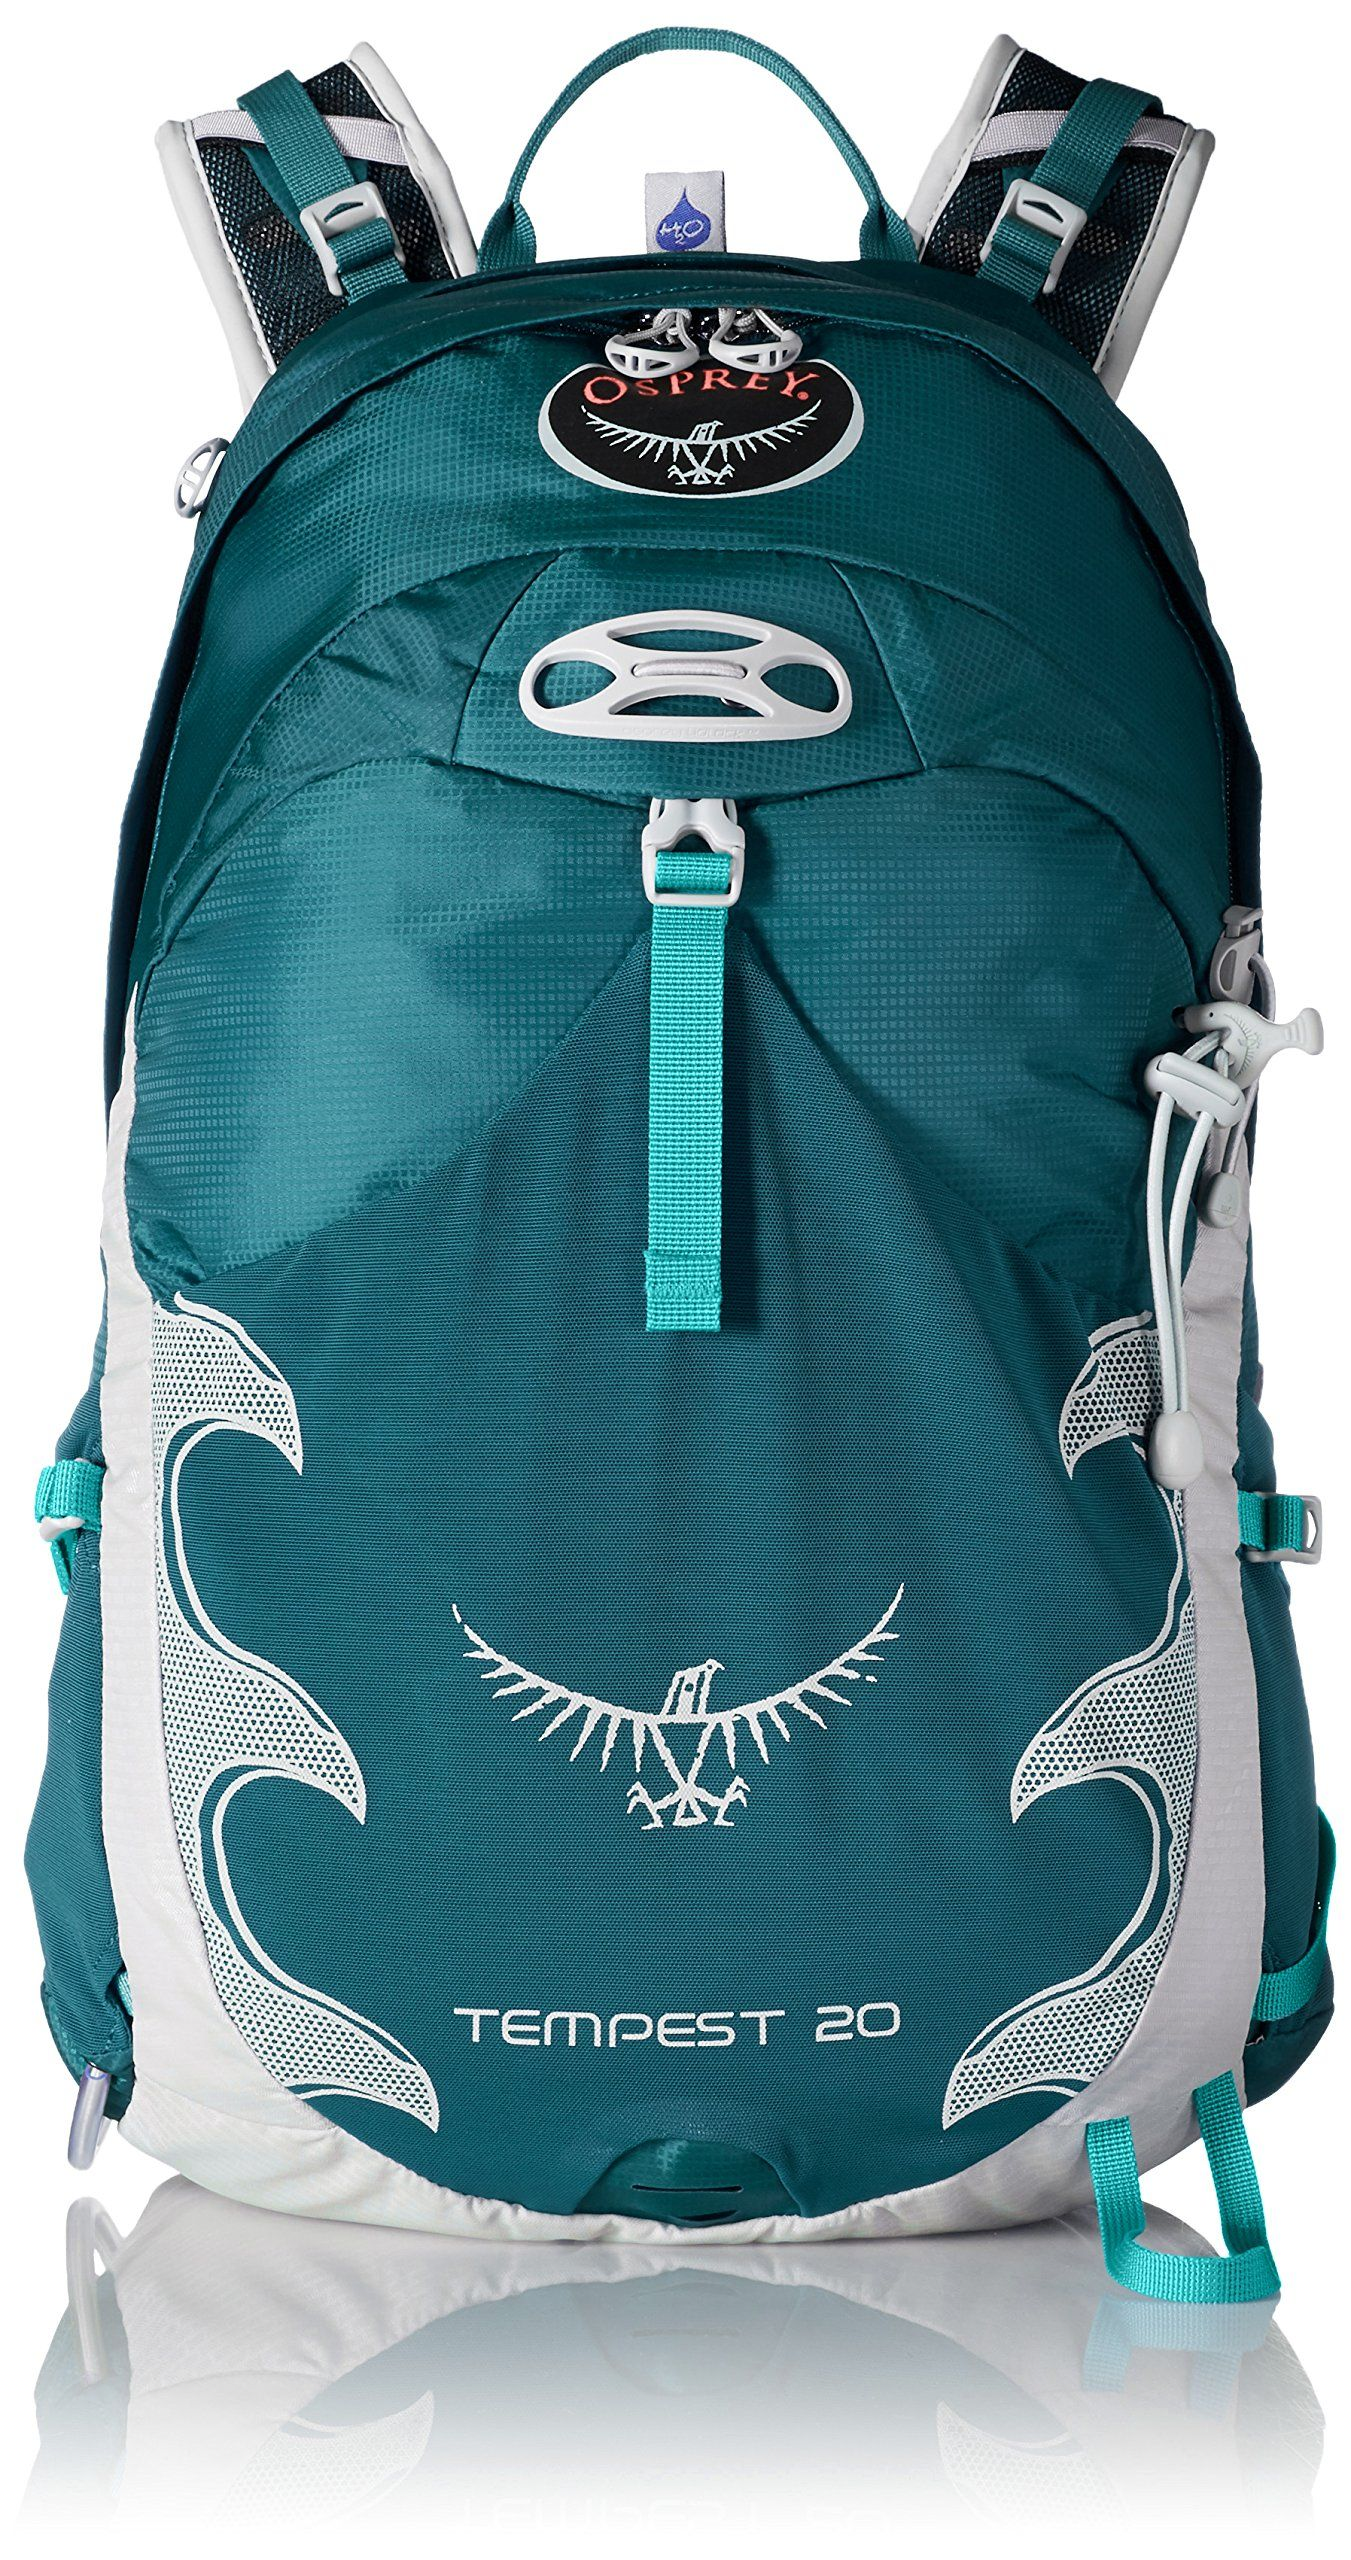 Osprey Packs Women s Tempest 20 Backpack, Tourmaline Green, Small Medium     Don t get left behind, see this great product   Camping backpack 8ecc37fbc9